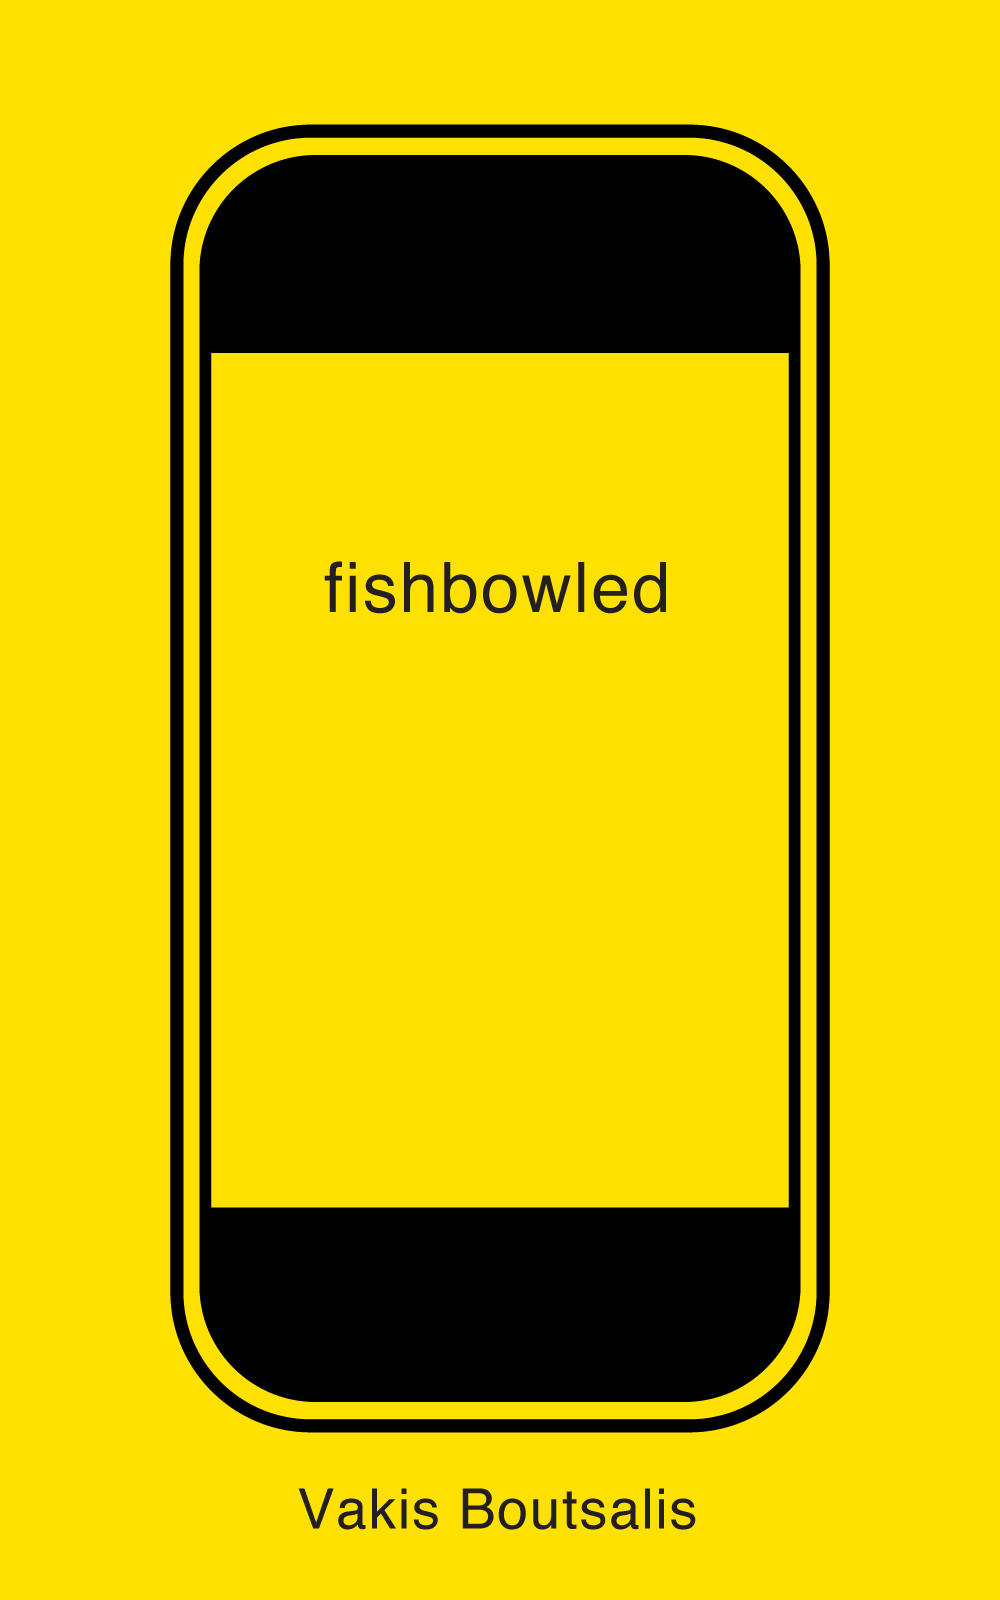 Fishbowled By: Vakis Boutsalis